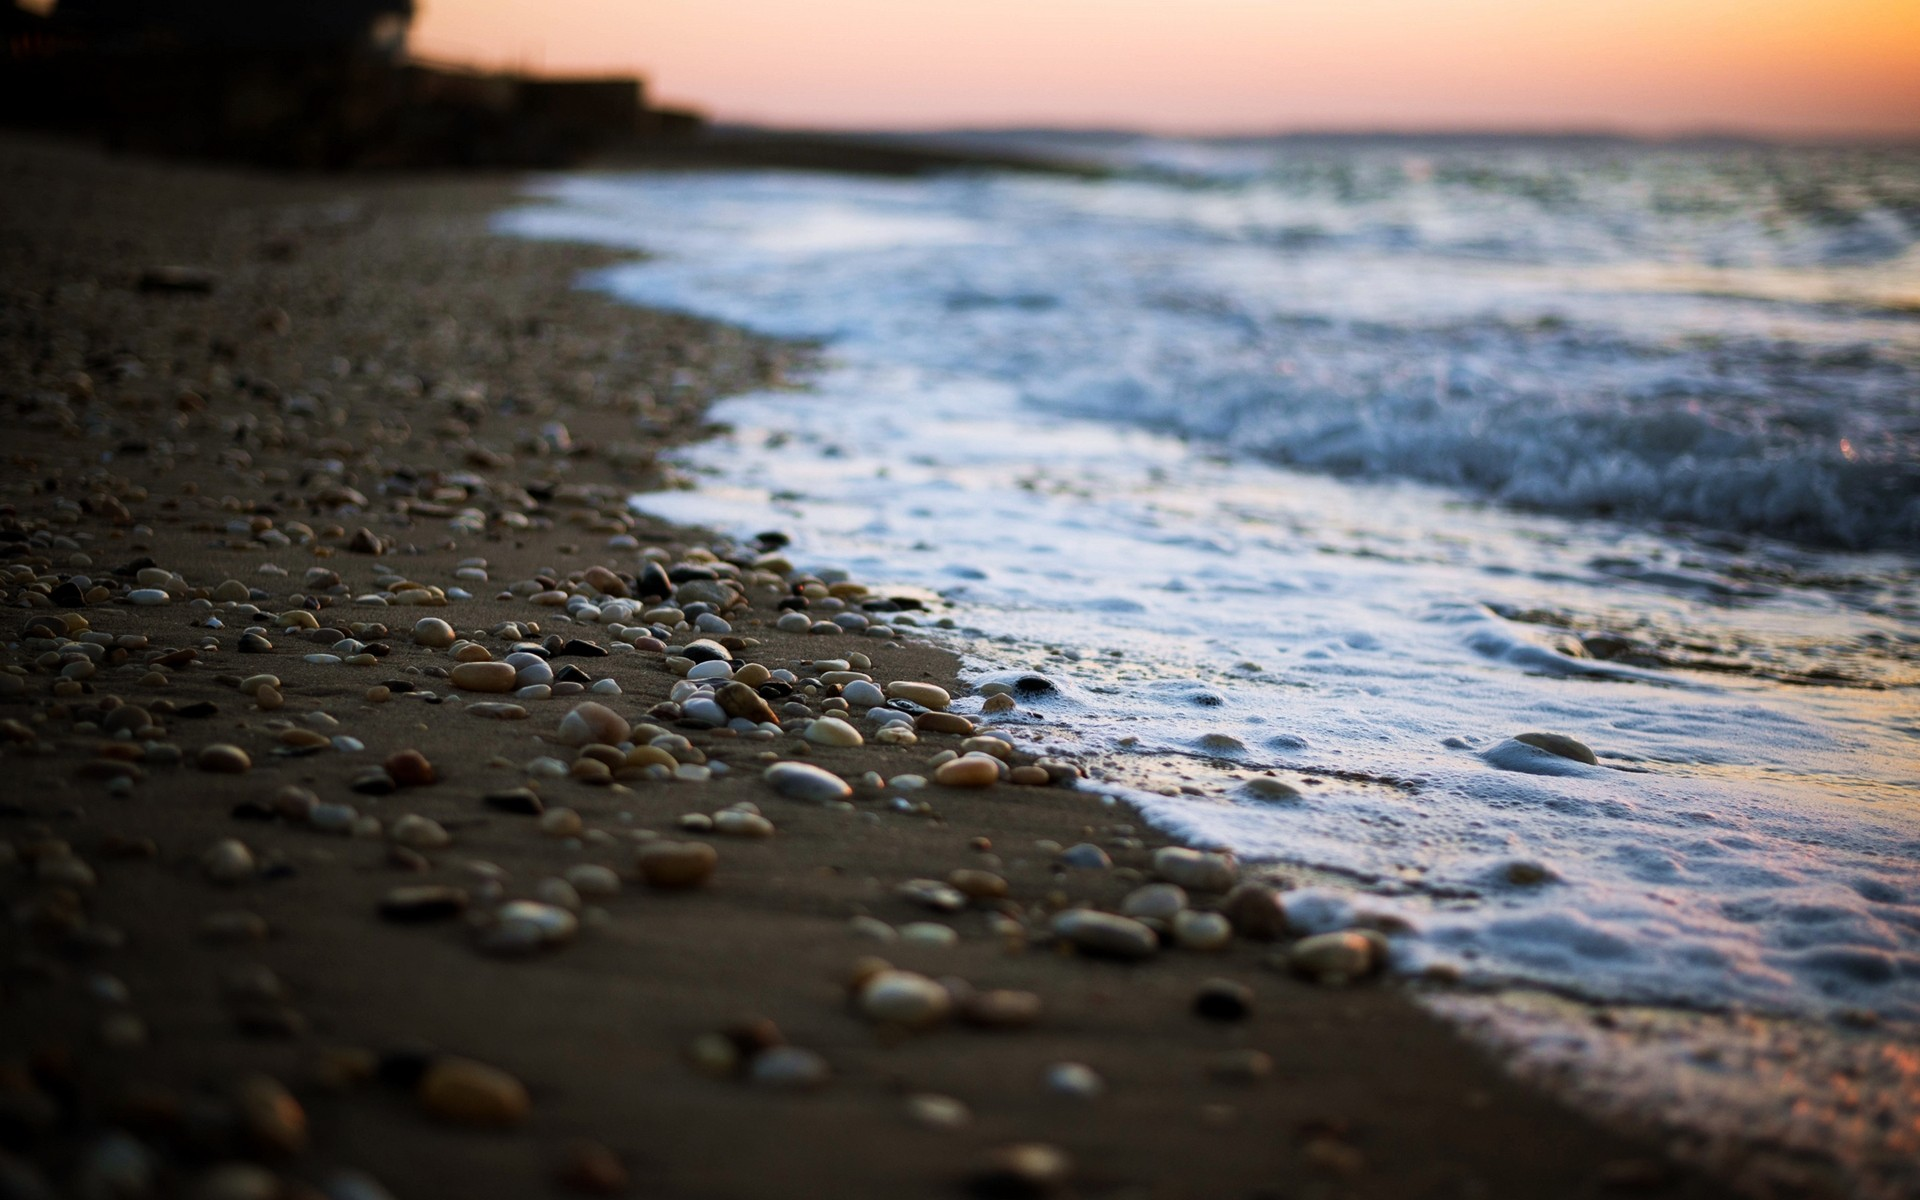 Wallpaper Quotes For Macbook Daily Wallpaper Pebble Beach I Like To Waste My Time